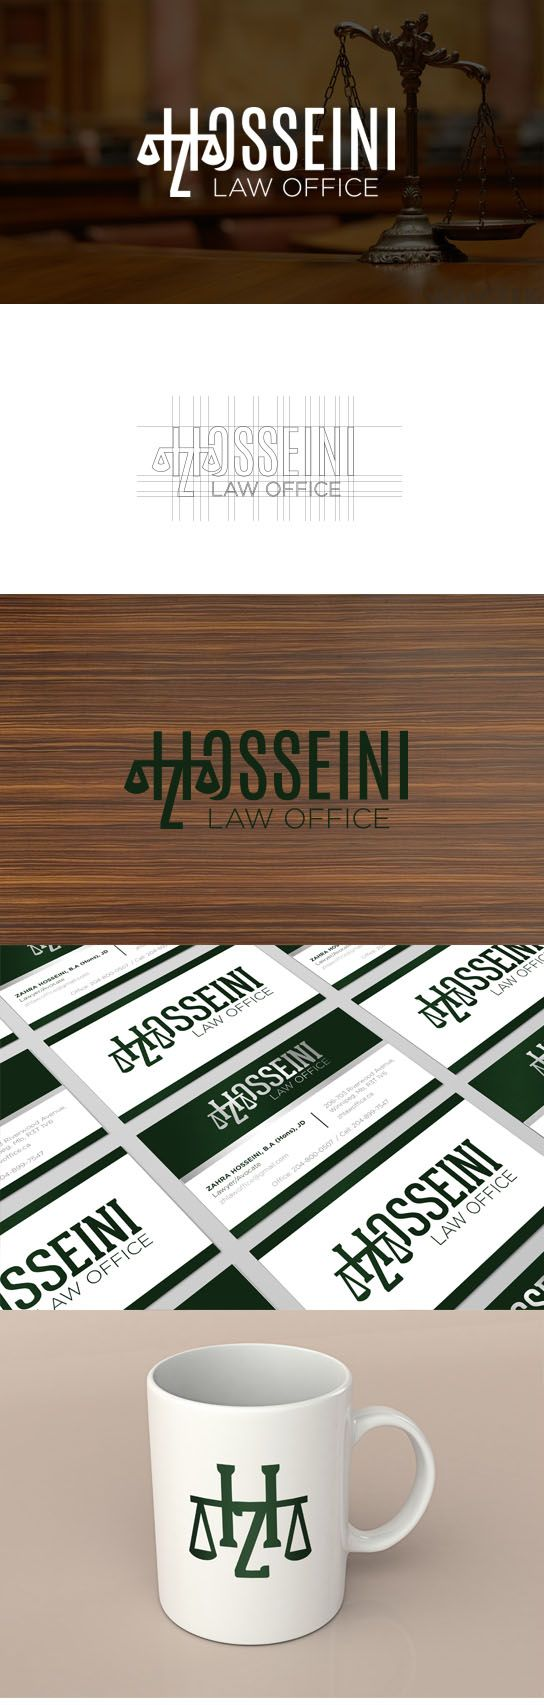 Zohra hossieni lawyer logo . scale of justice ,lawyer law avukat advokaat advocate advocaat avocat anwalt avvocato advogados advocacia juridico abogado abogados 律师 pengacara attorney attorneys lawyerlife justiça tribunal logo design judge محامين lawoffice suits paralegal lawyerup